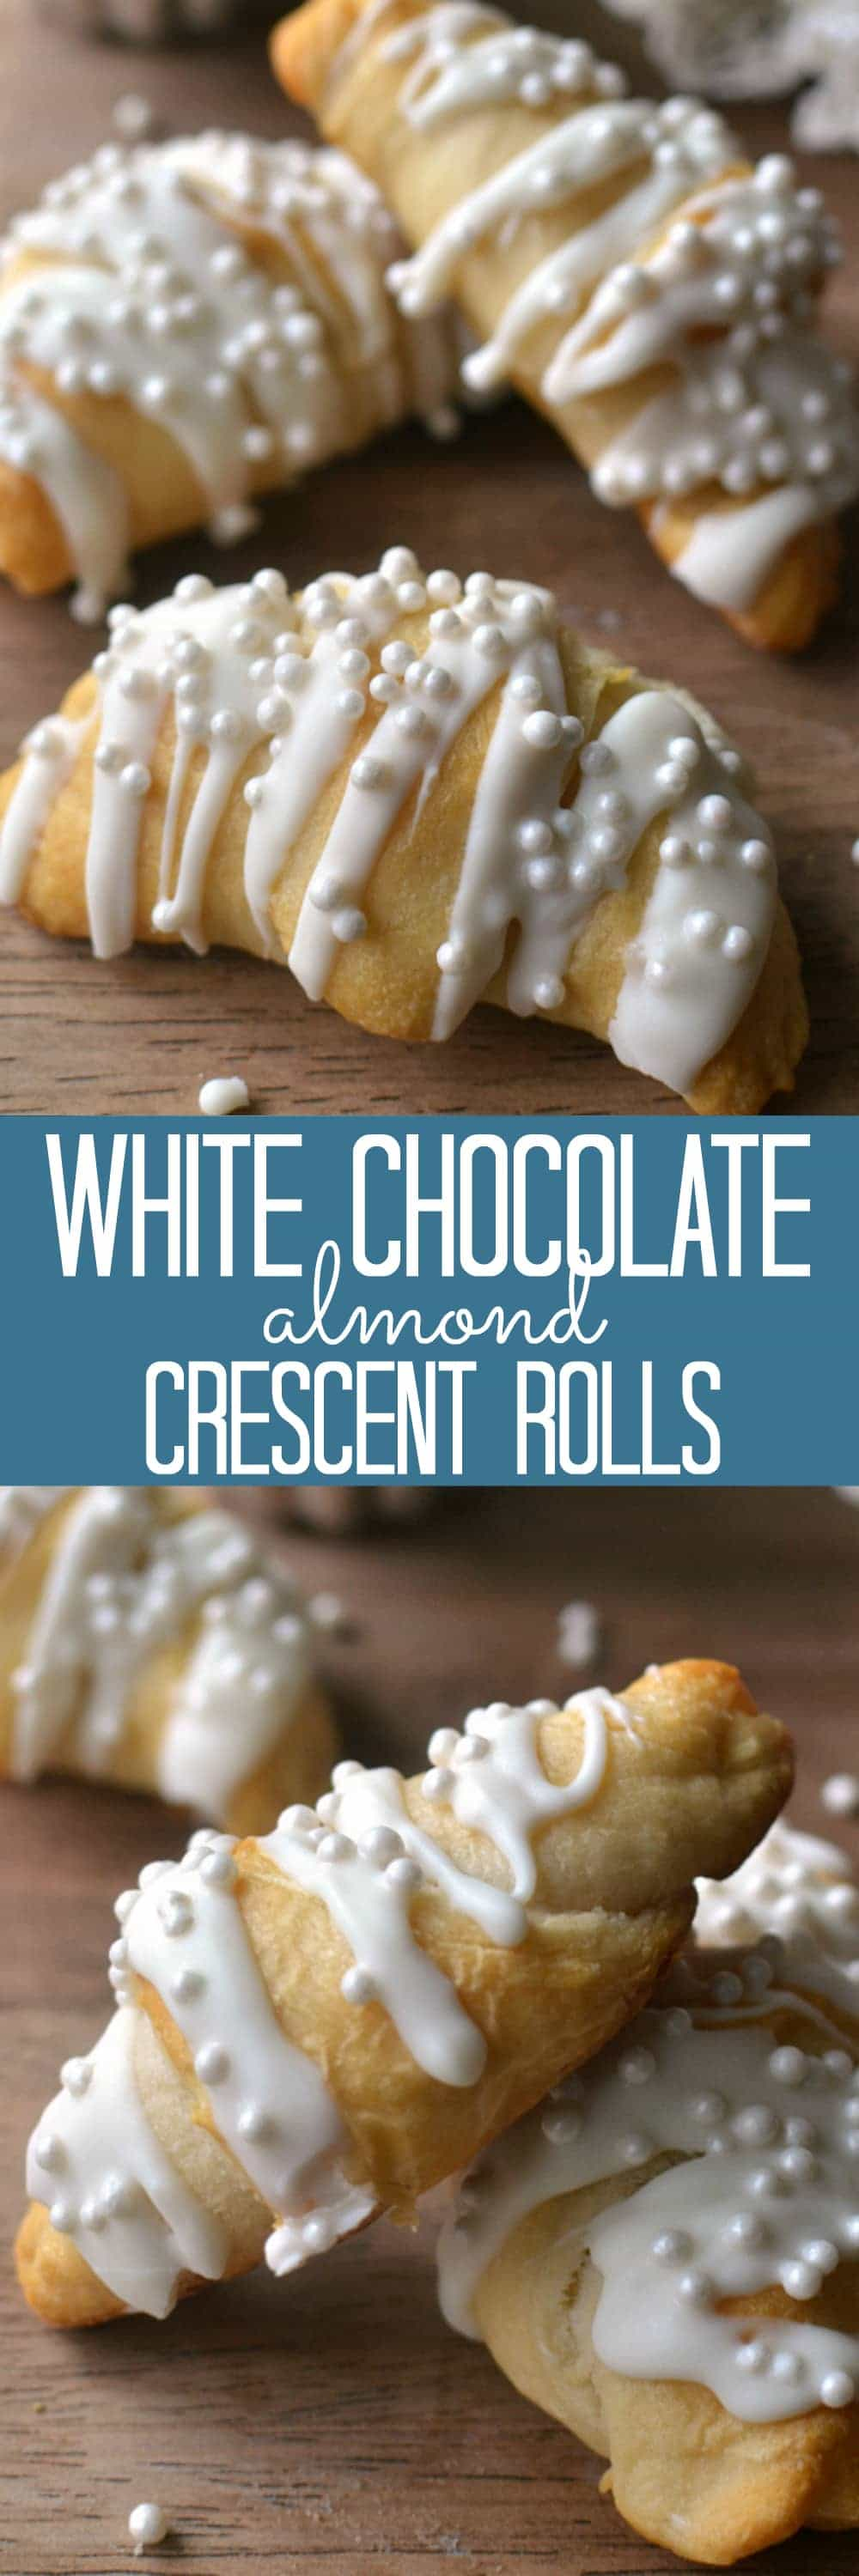 Buttery crescent rolls stuffed with almond cream cheese and sliced almonds and topped with white chocolate and nonpareils. These rolls are not only delicious, they're so pretty, too! Perfect for New Year's morning, a wedding shower, or any special occasion.